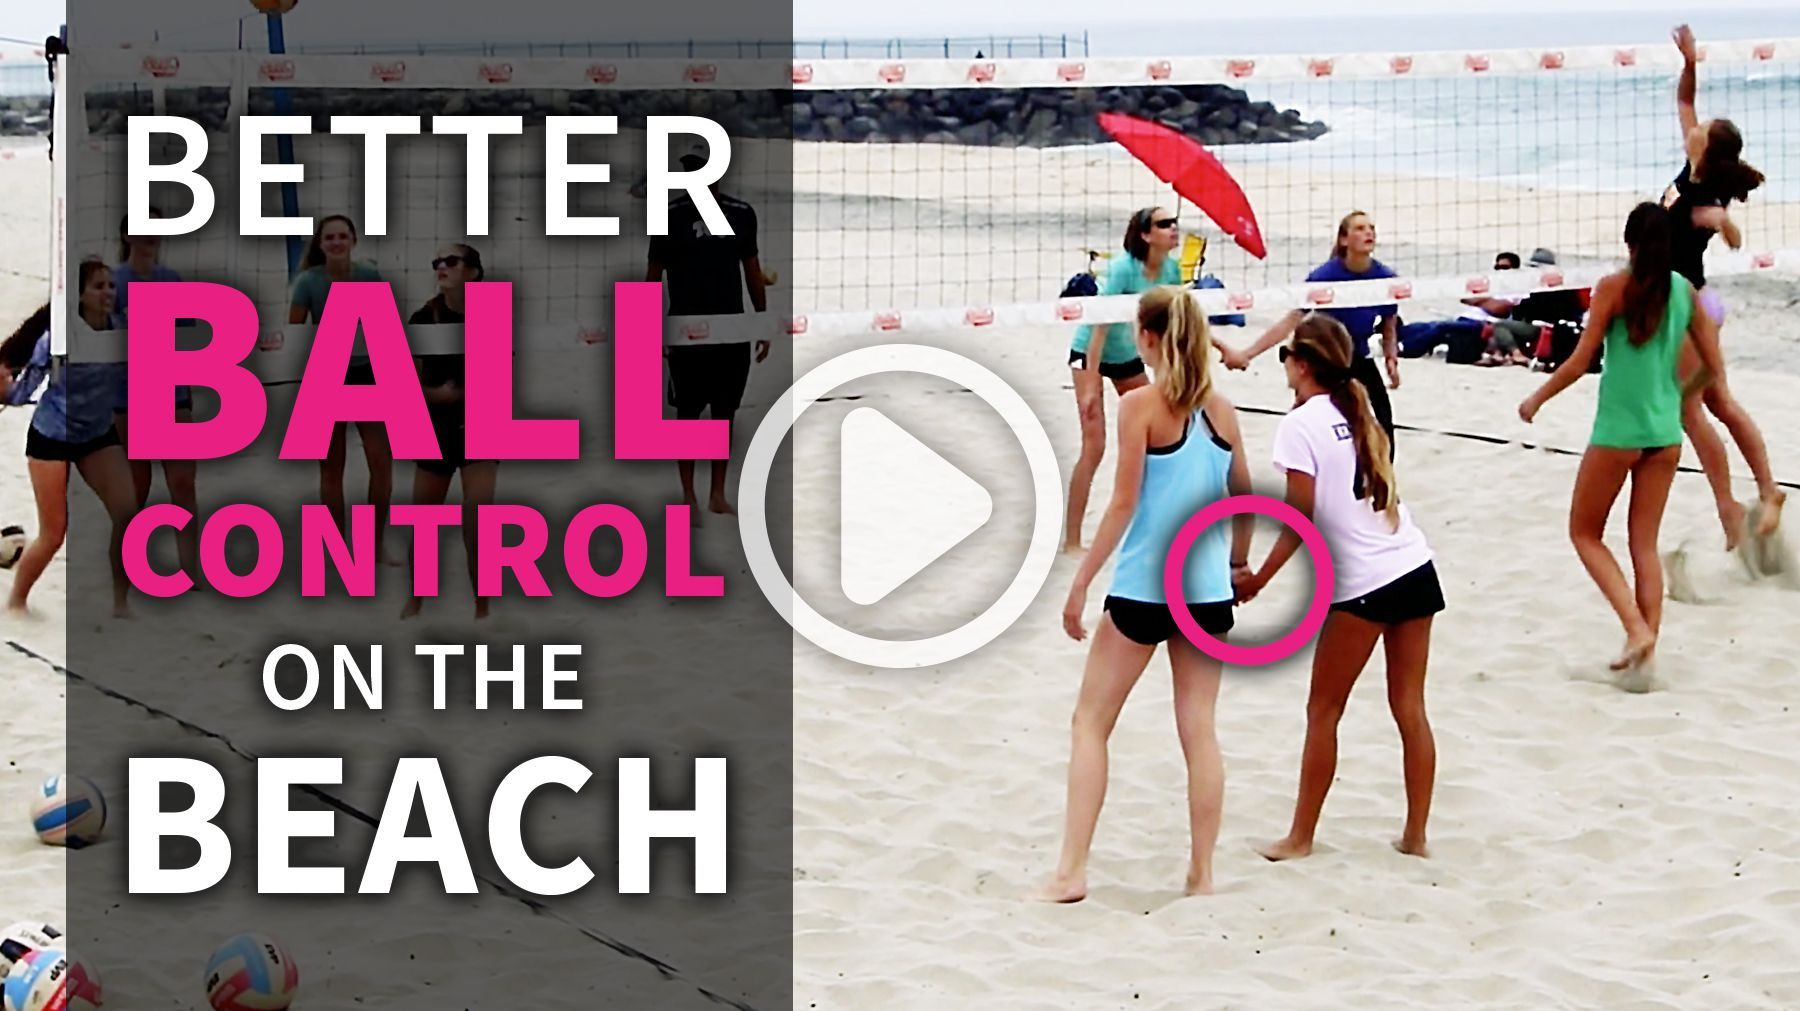 Hold Hands With Beach Partner For Better Ball Control The Art Of Coaching Volleyball Coaching Volleyball Hold On Partners